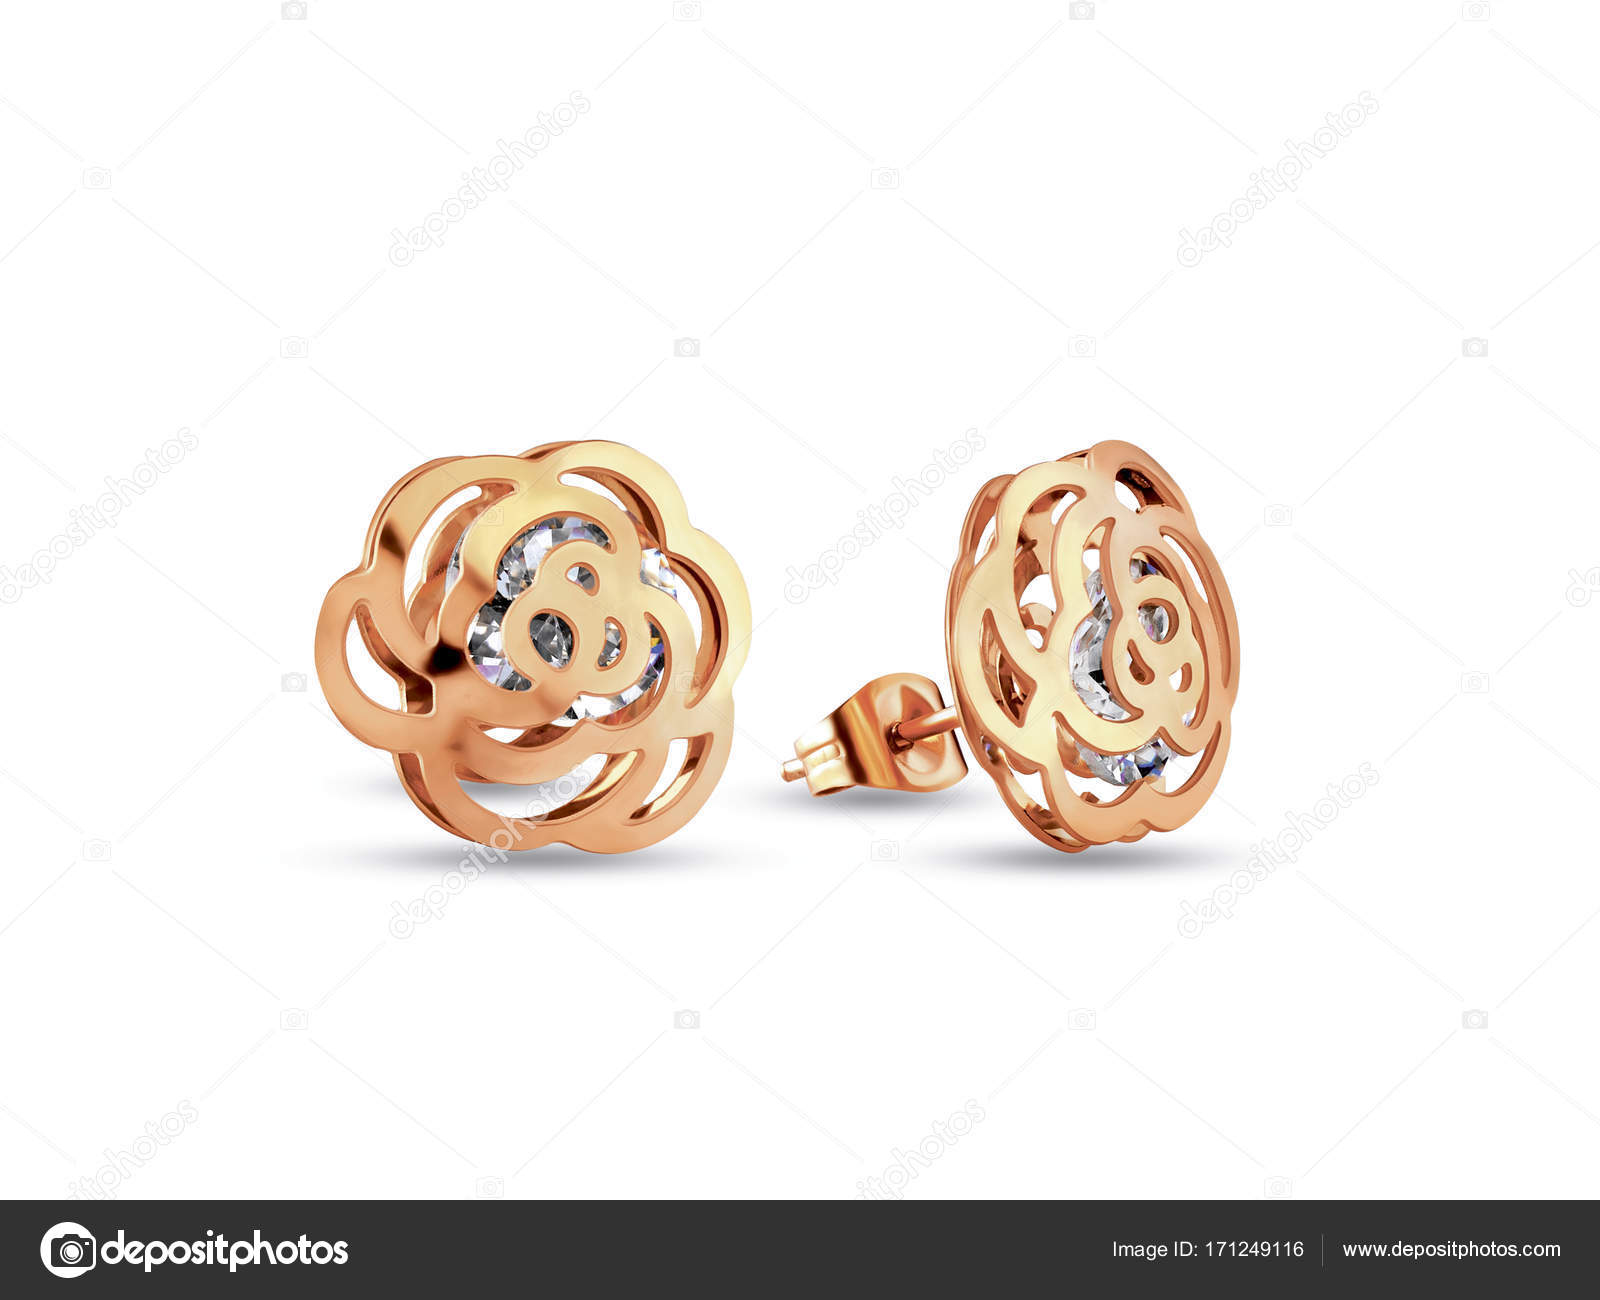 Golden earrings small size flower shape with diamonds jewelry on